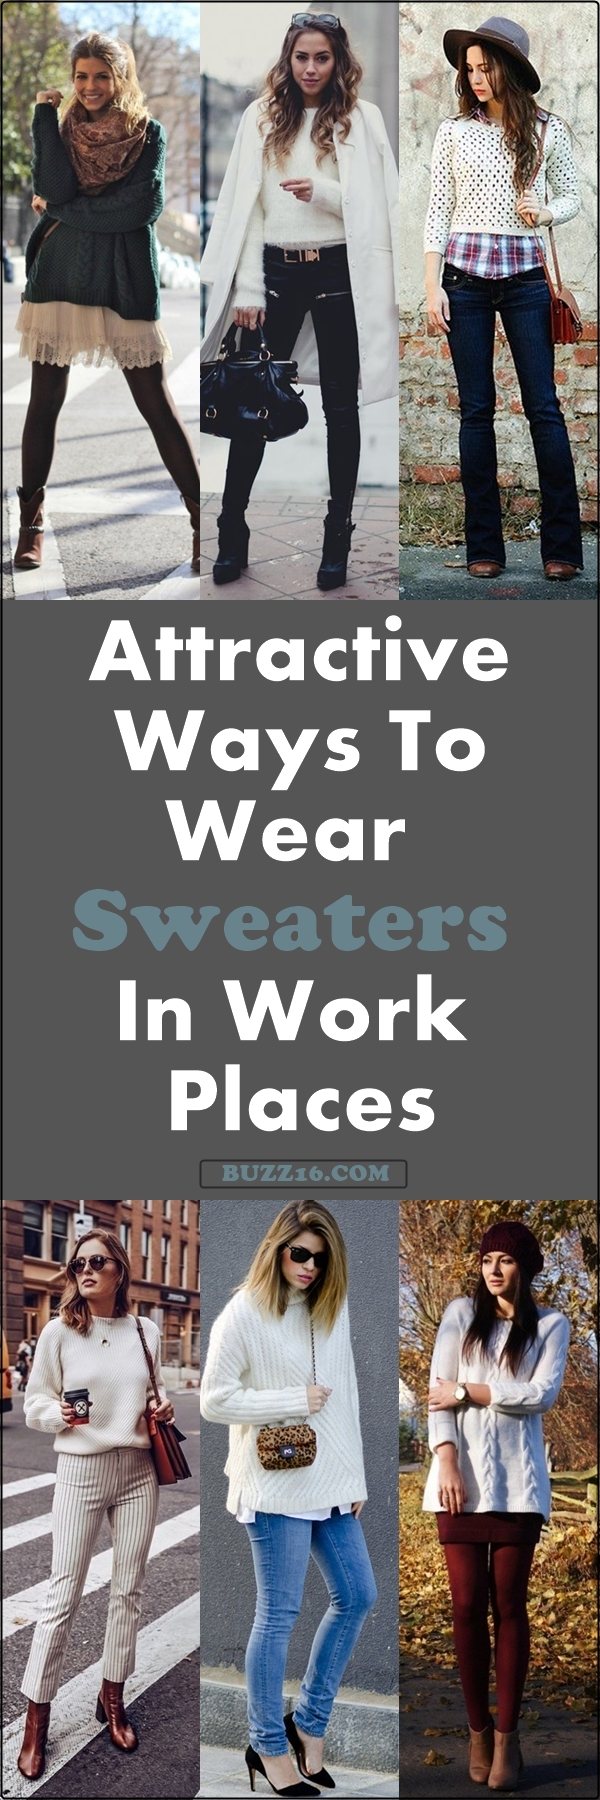 40 Attractive Ways to Wear Sweater in Work Places